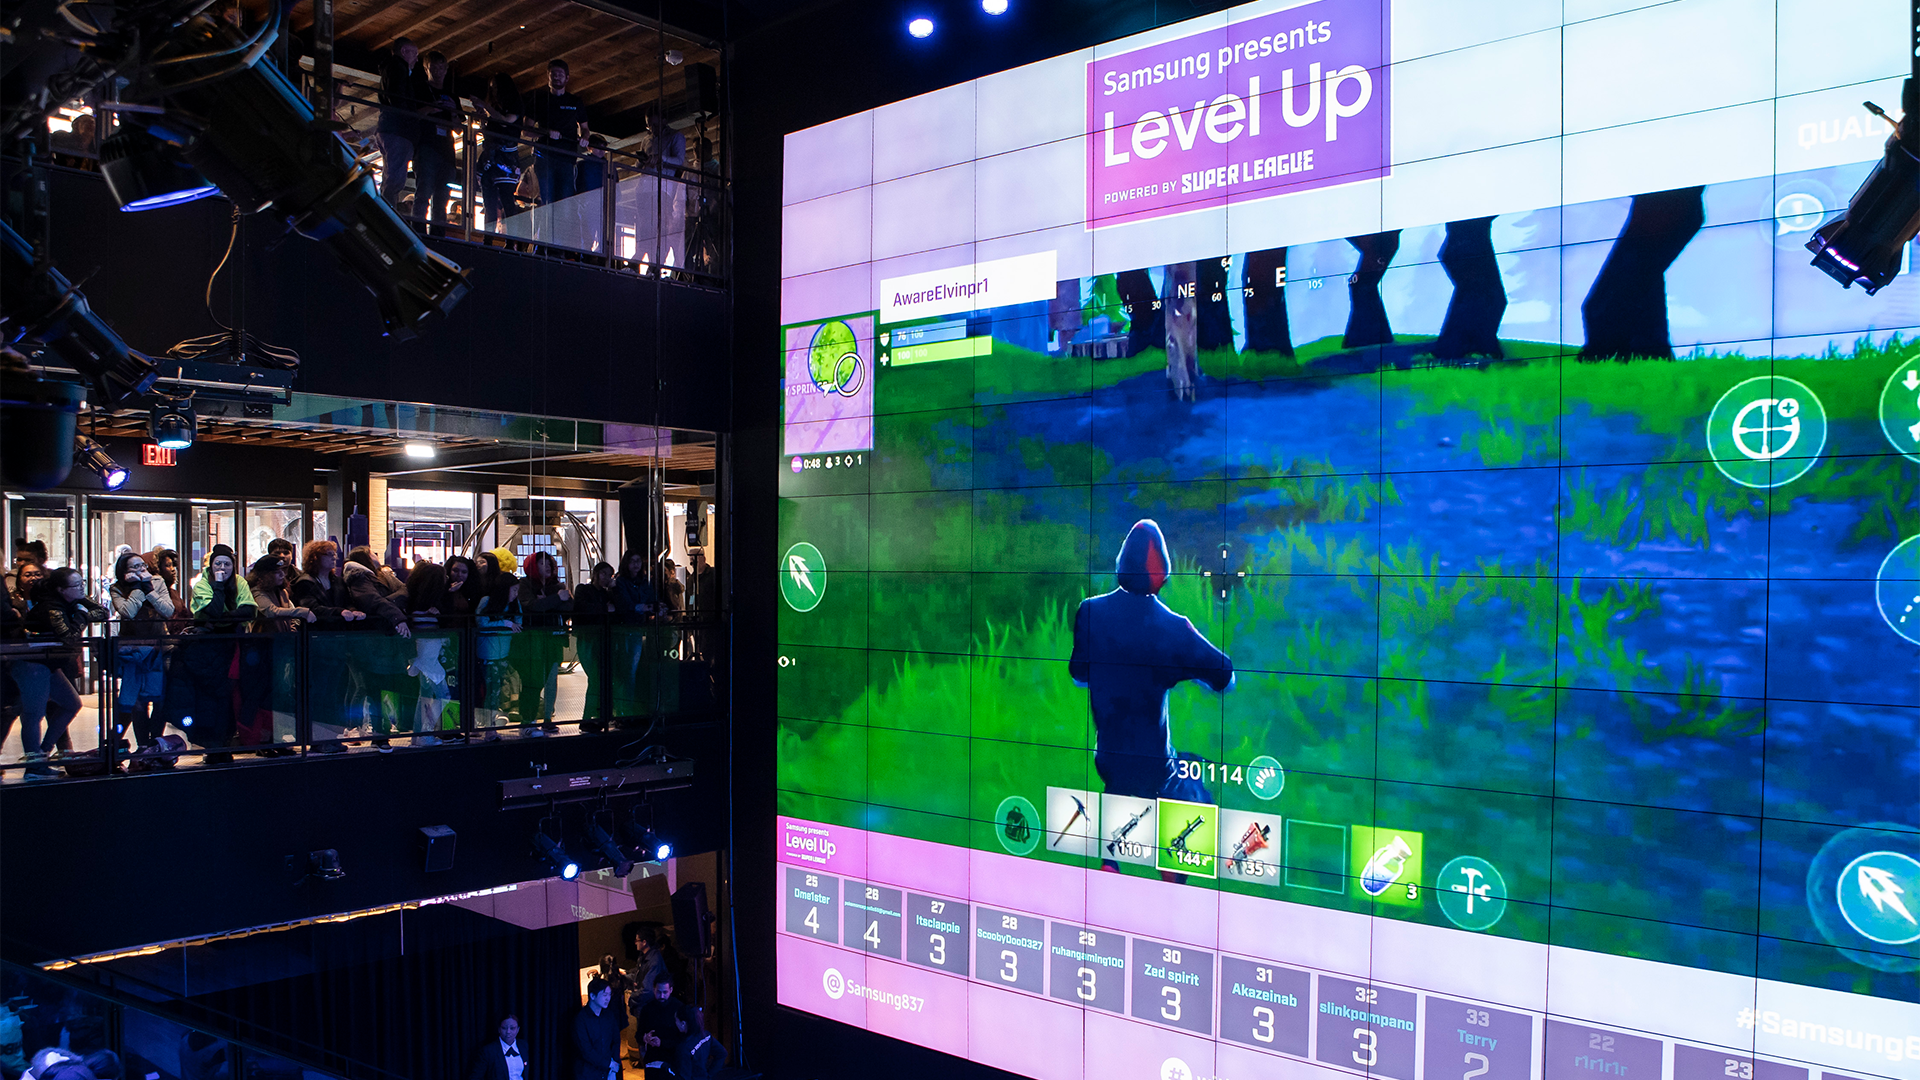 Samsung presents Level Up with Ninja and iKON - Super League Gaming